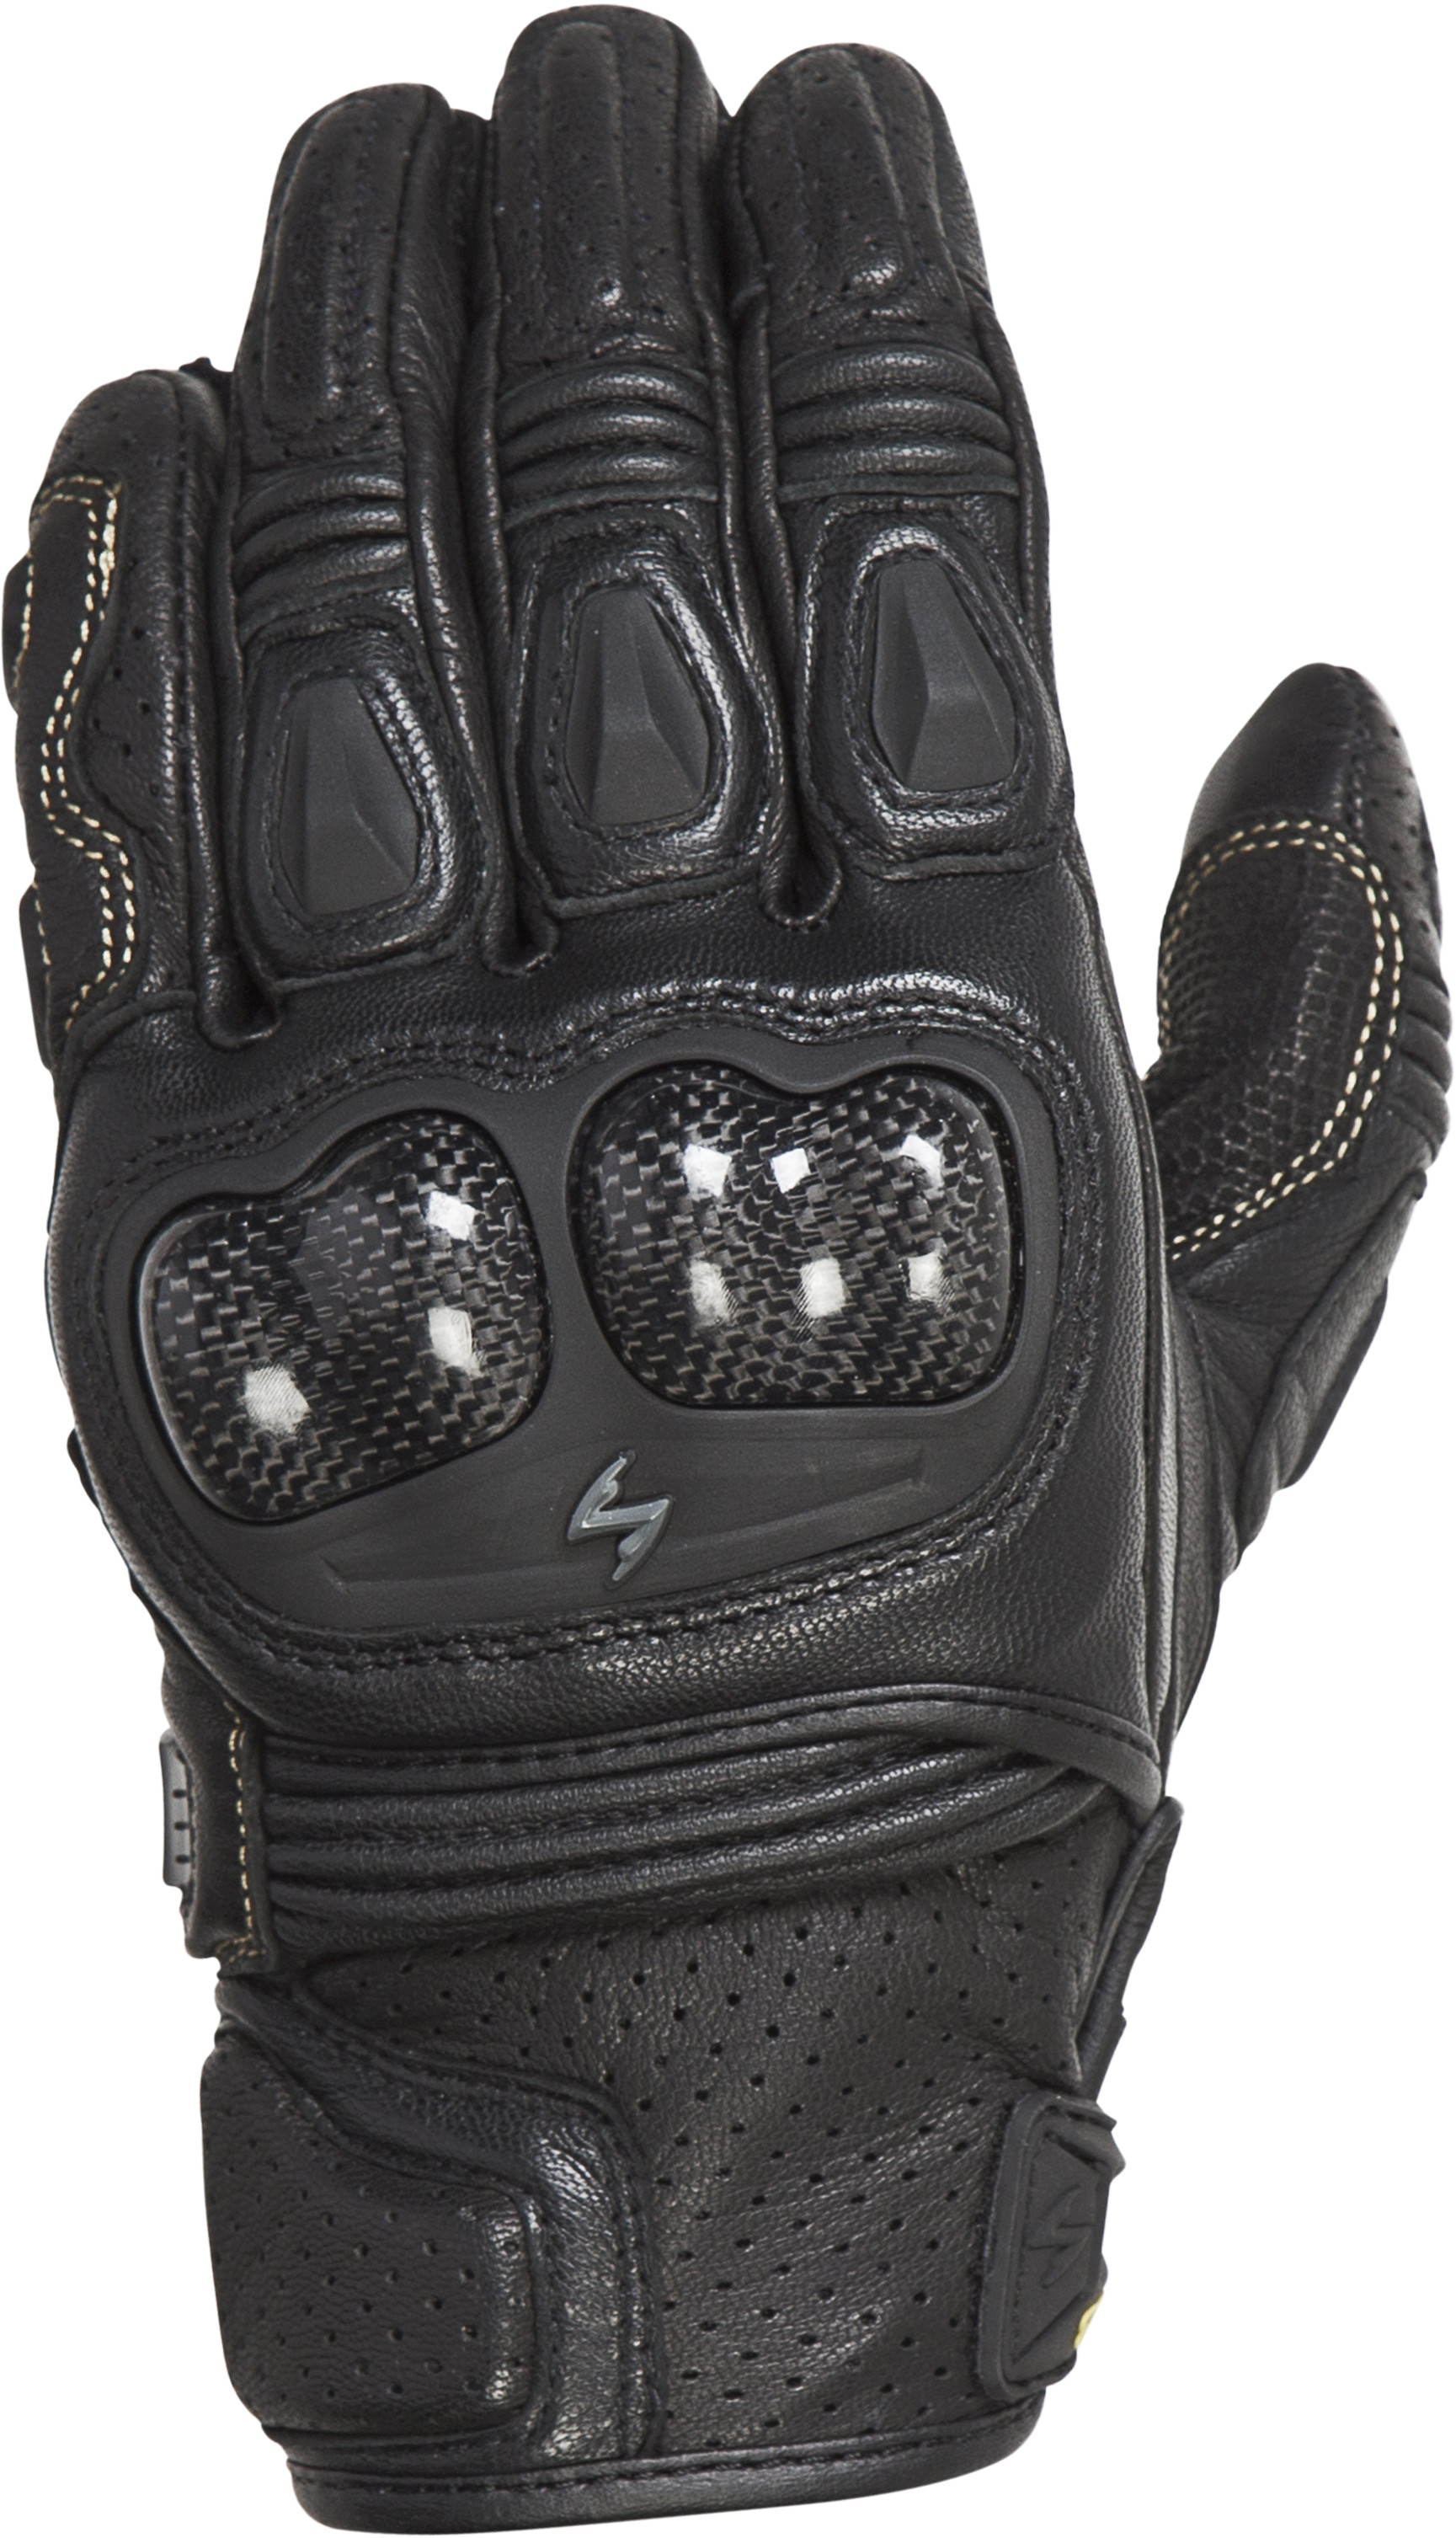 Scorpion SGS MK II Women's Gloves